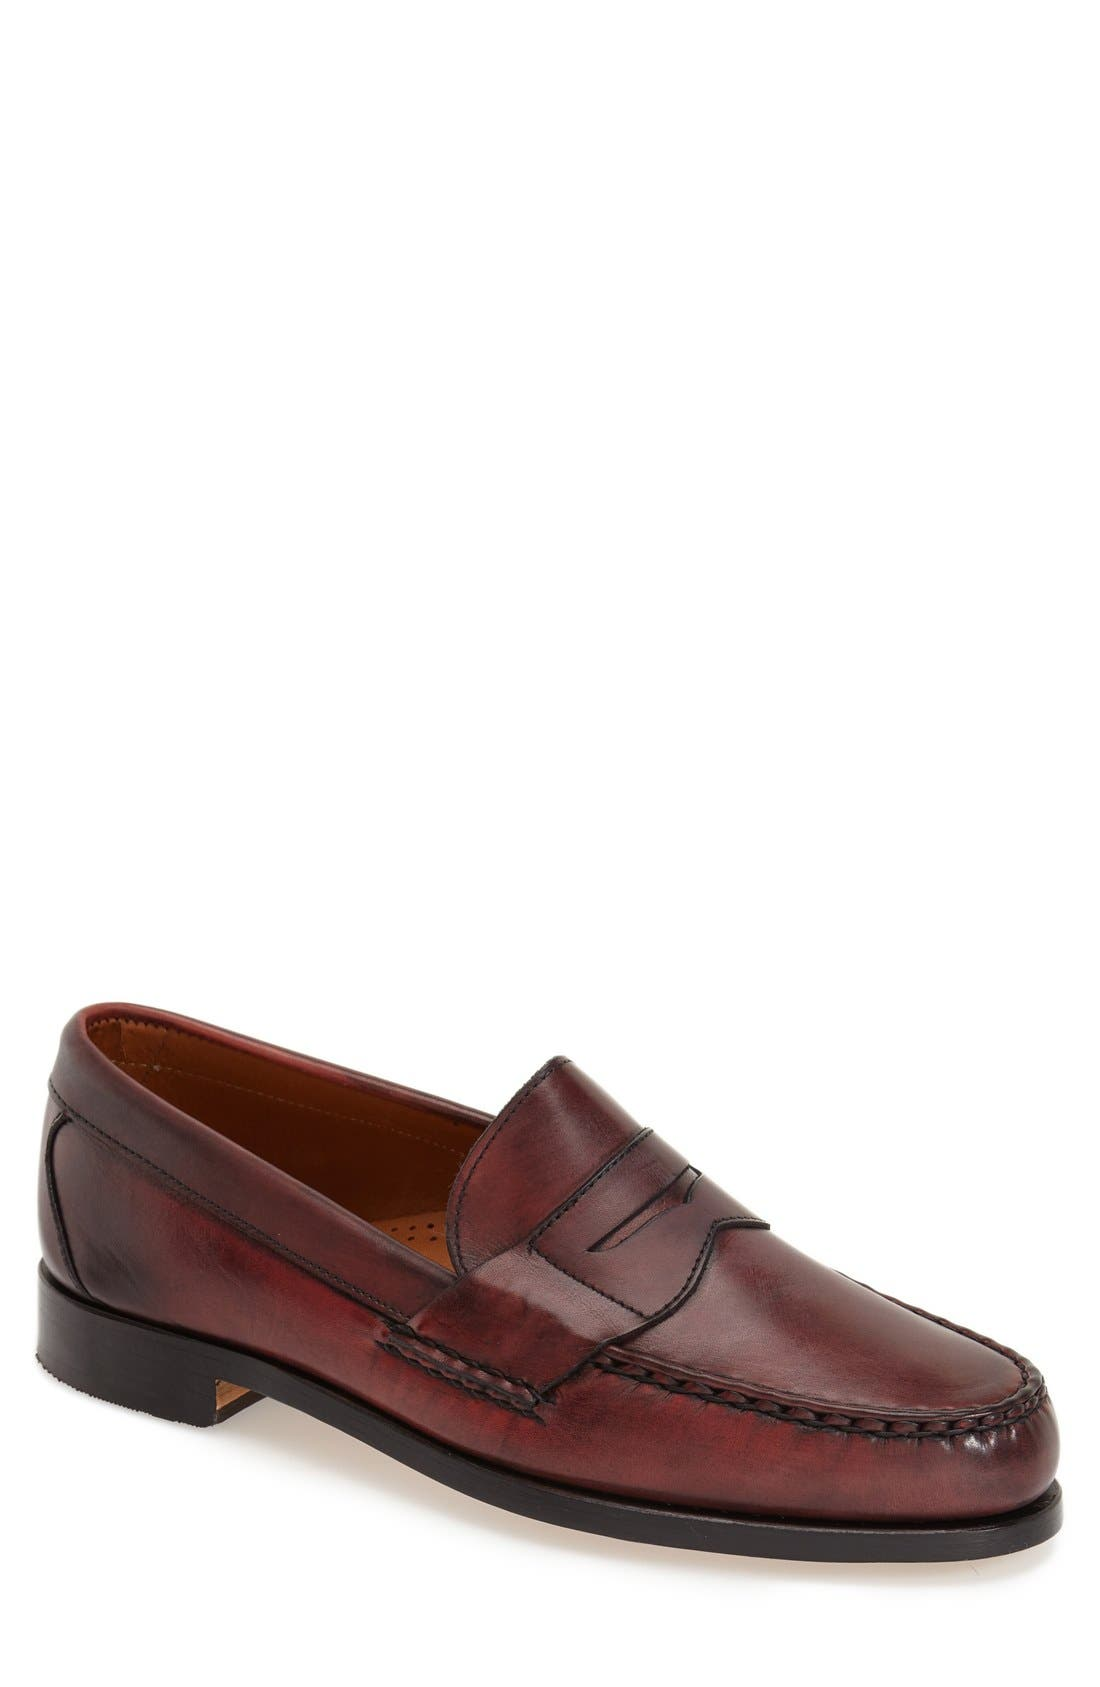 Allen Edmonds 'Cavanaugh' Penny Loafer (Men)